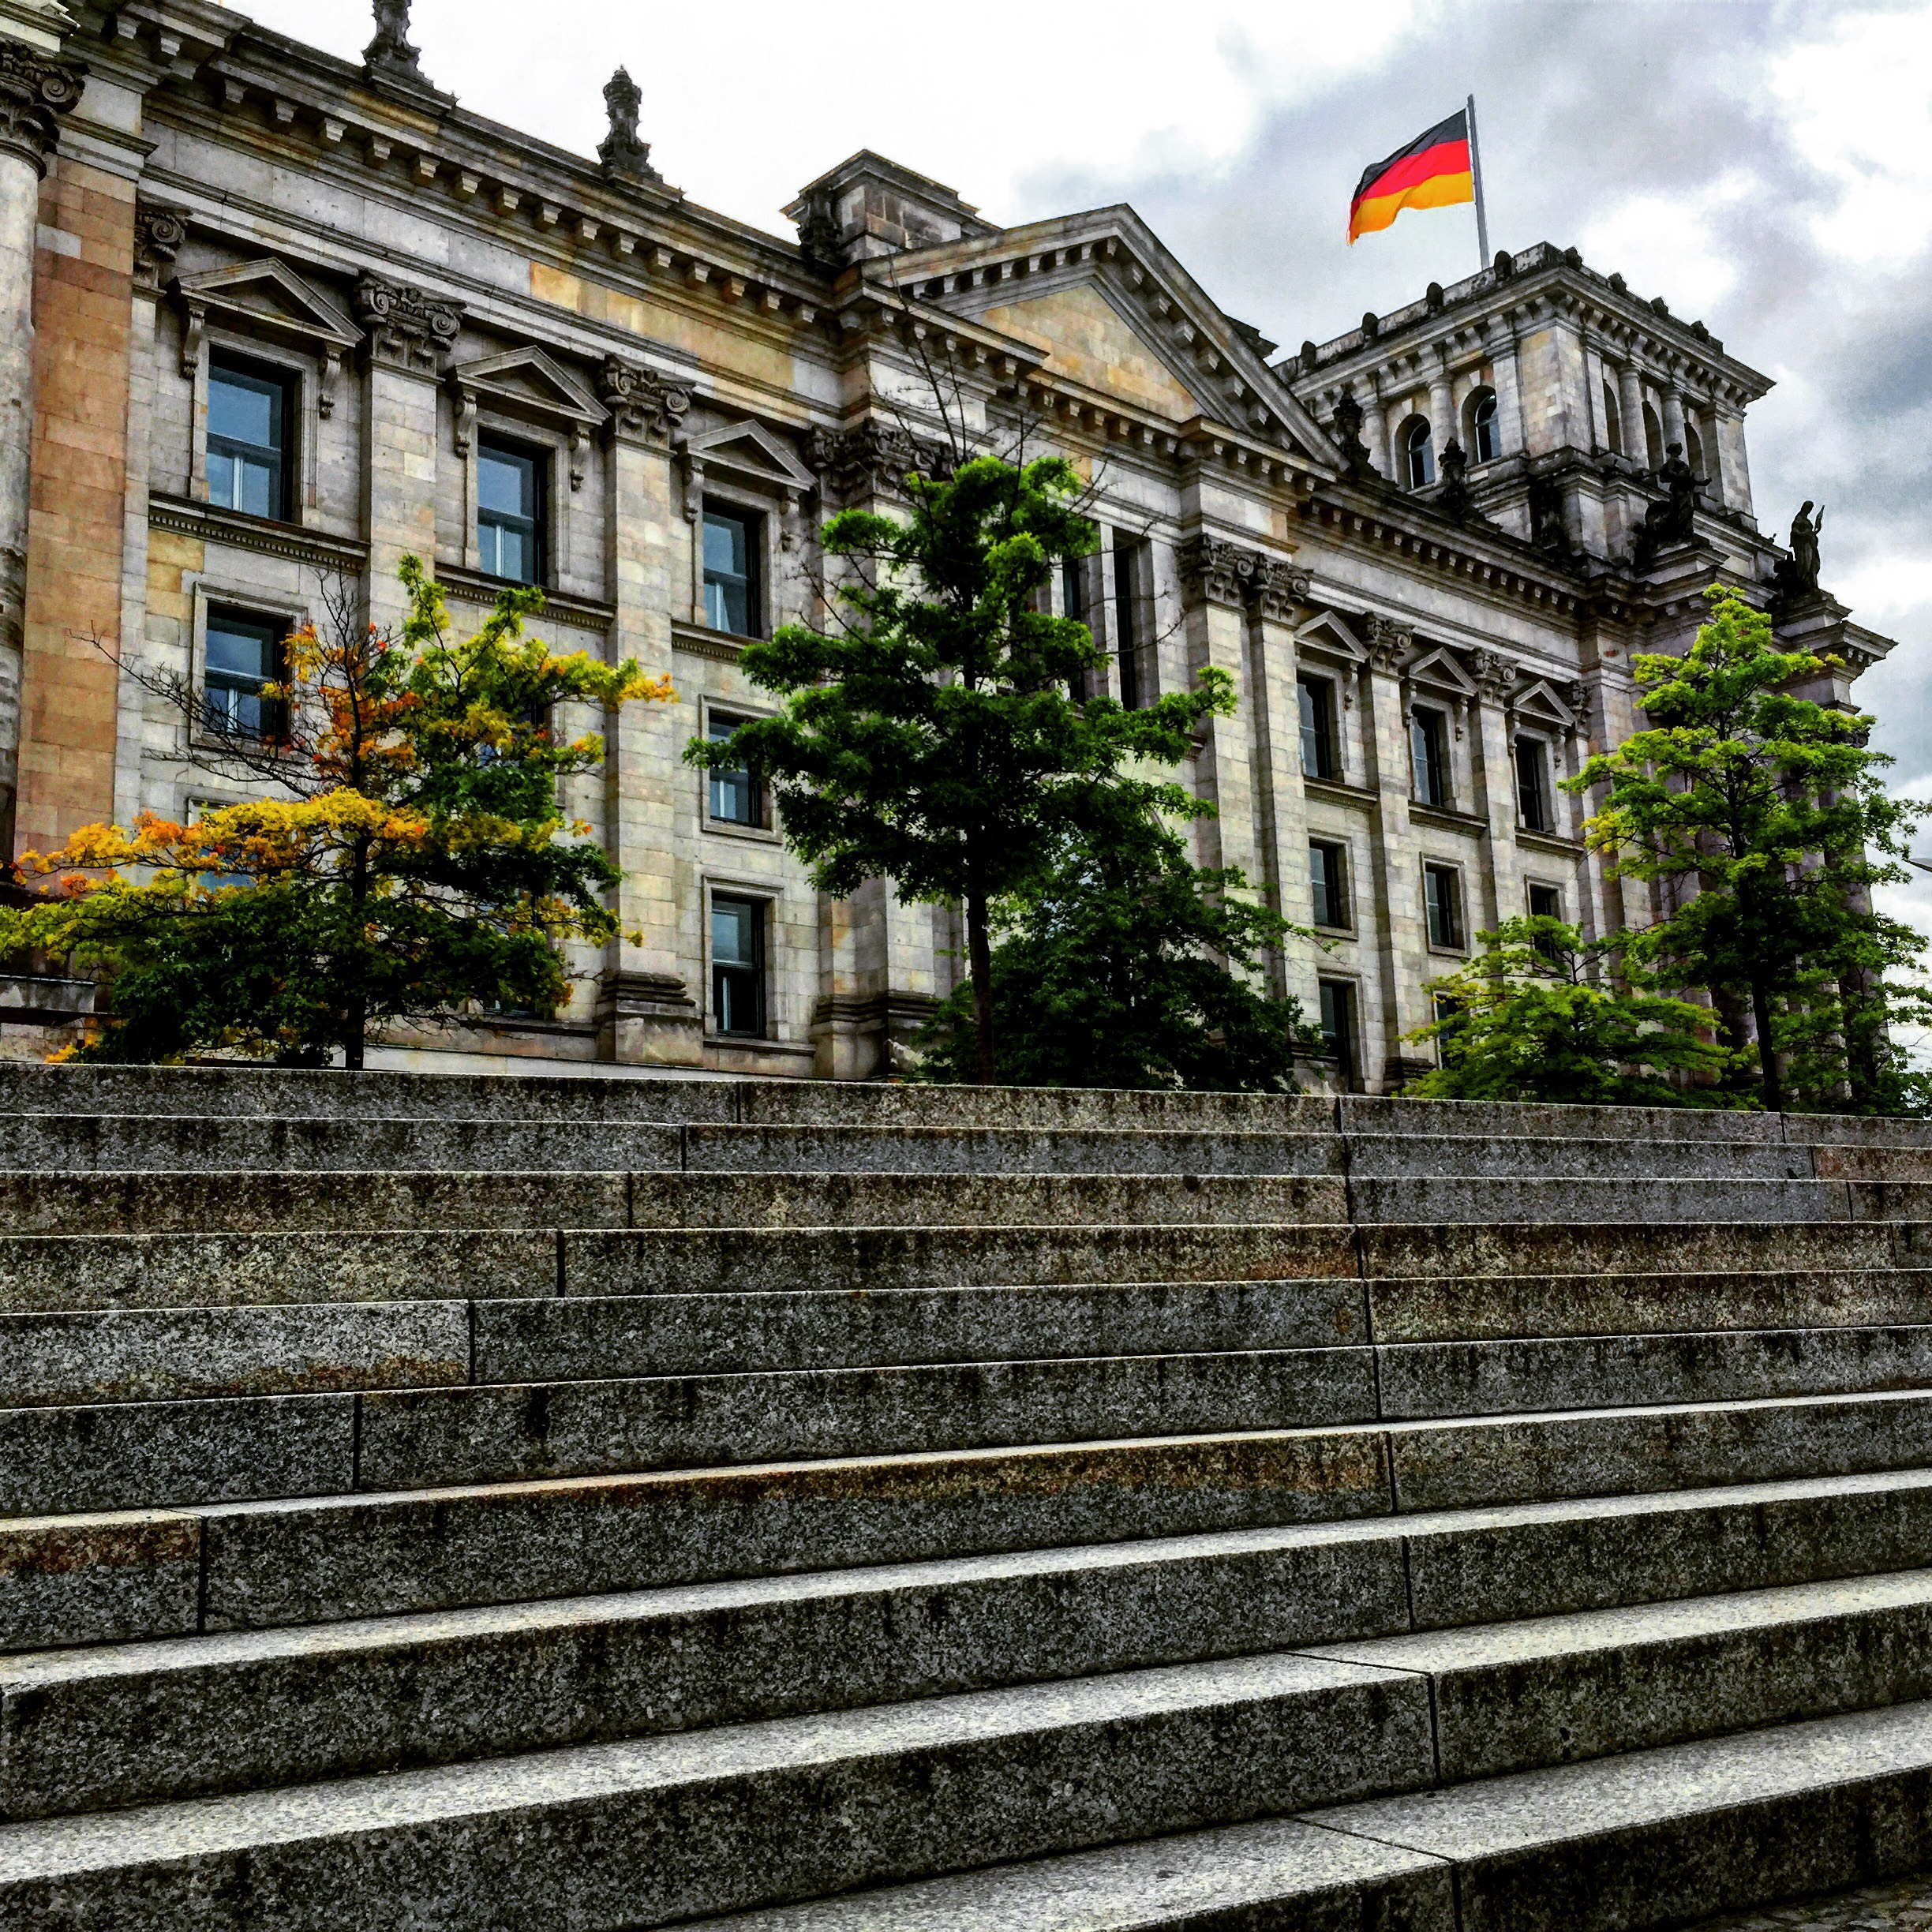 Steps of the Reichstag